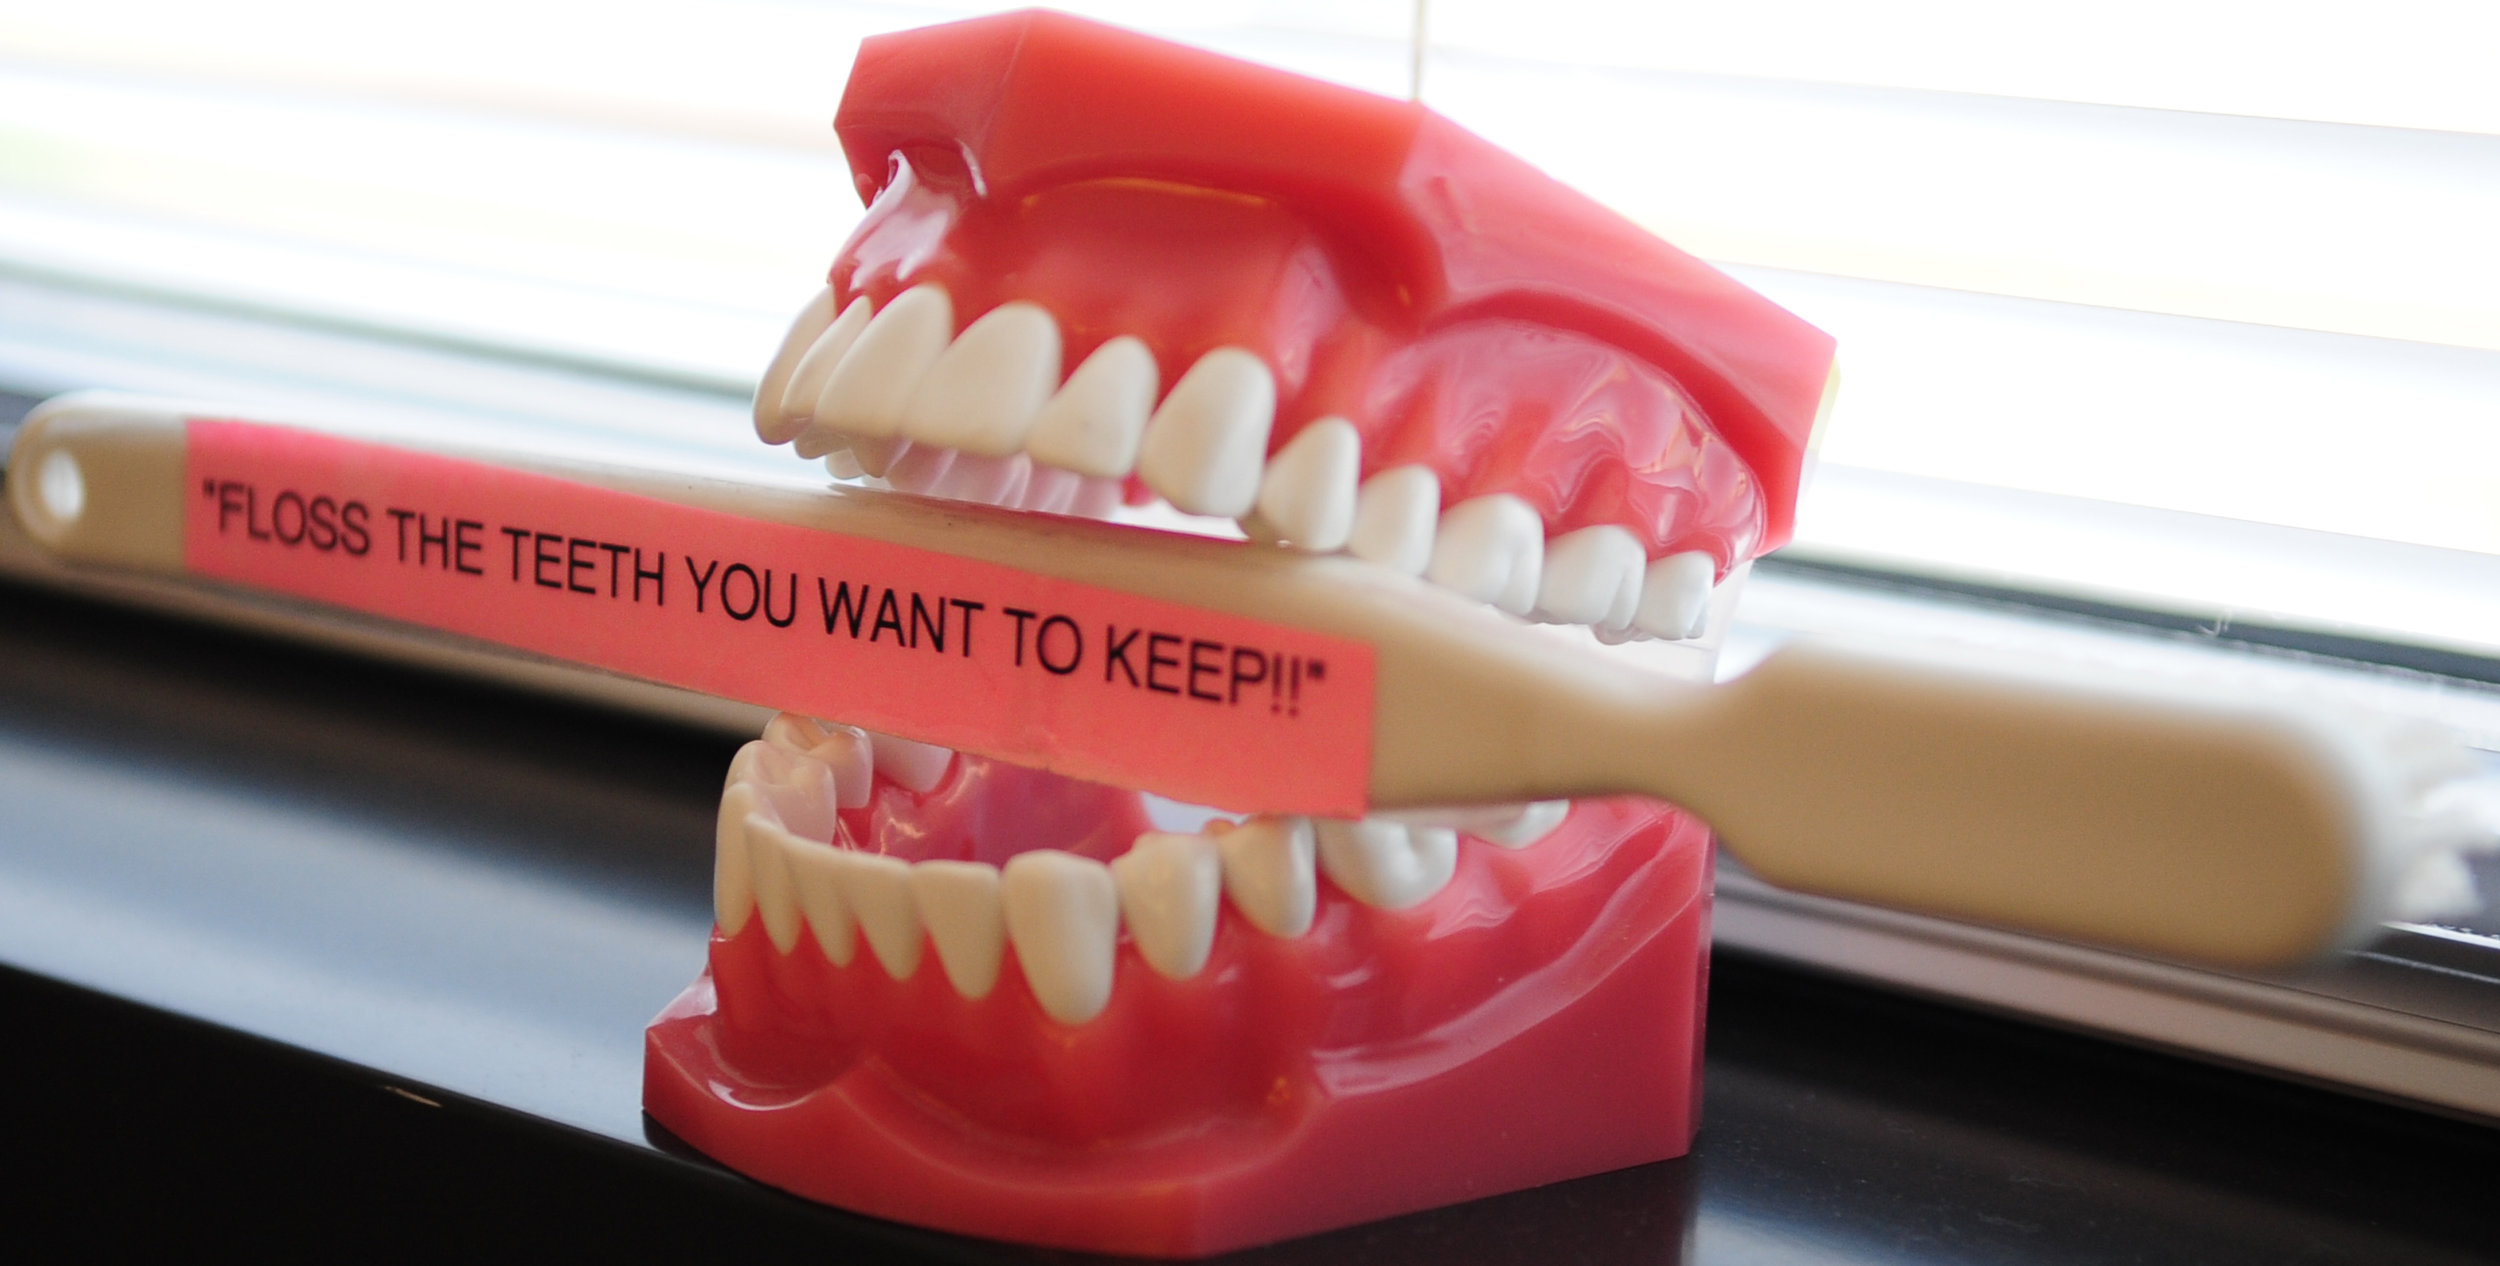 Flossing is an essential part of your oral care routine and NEVER an optional extra